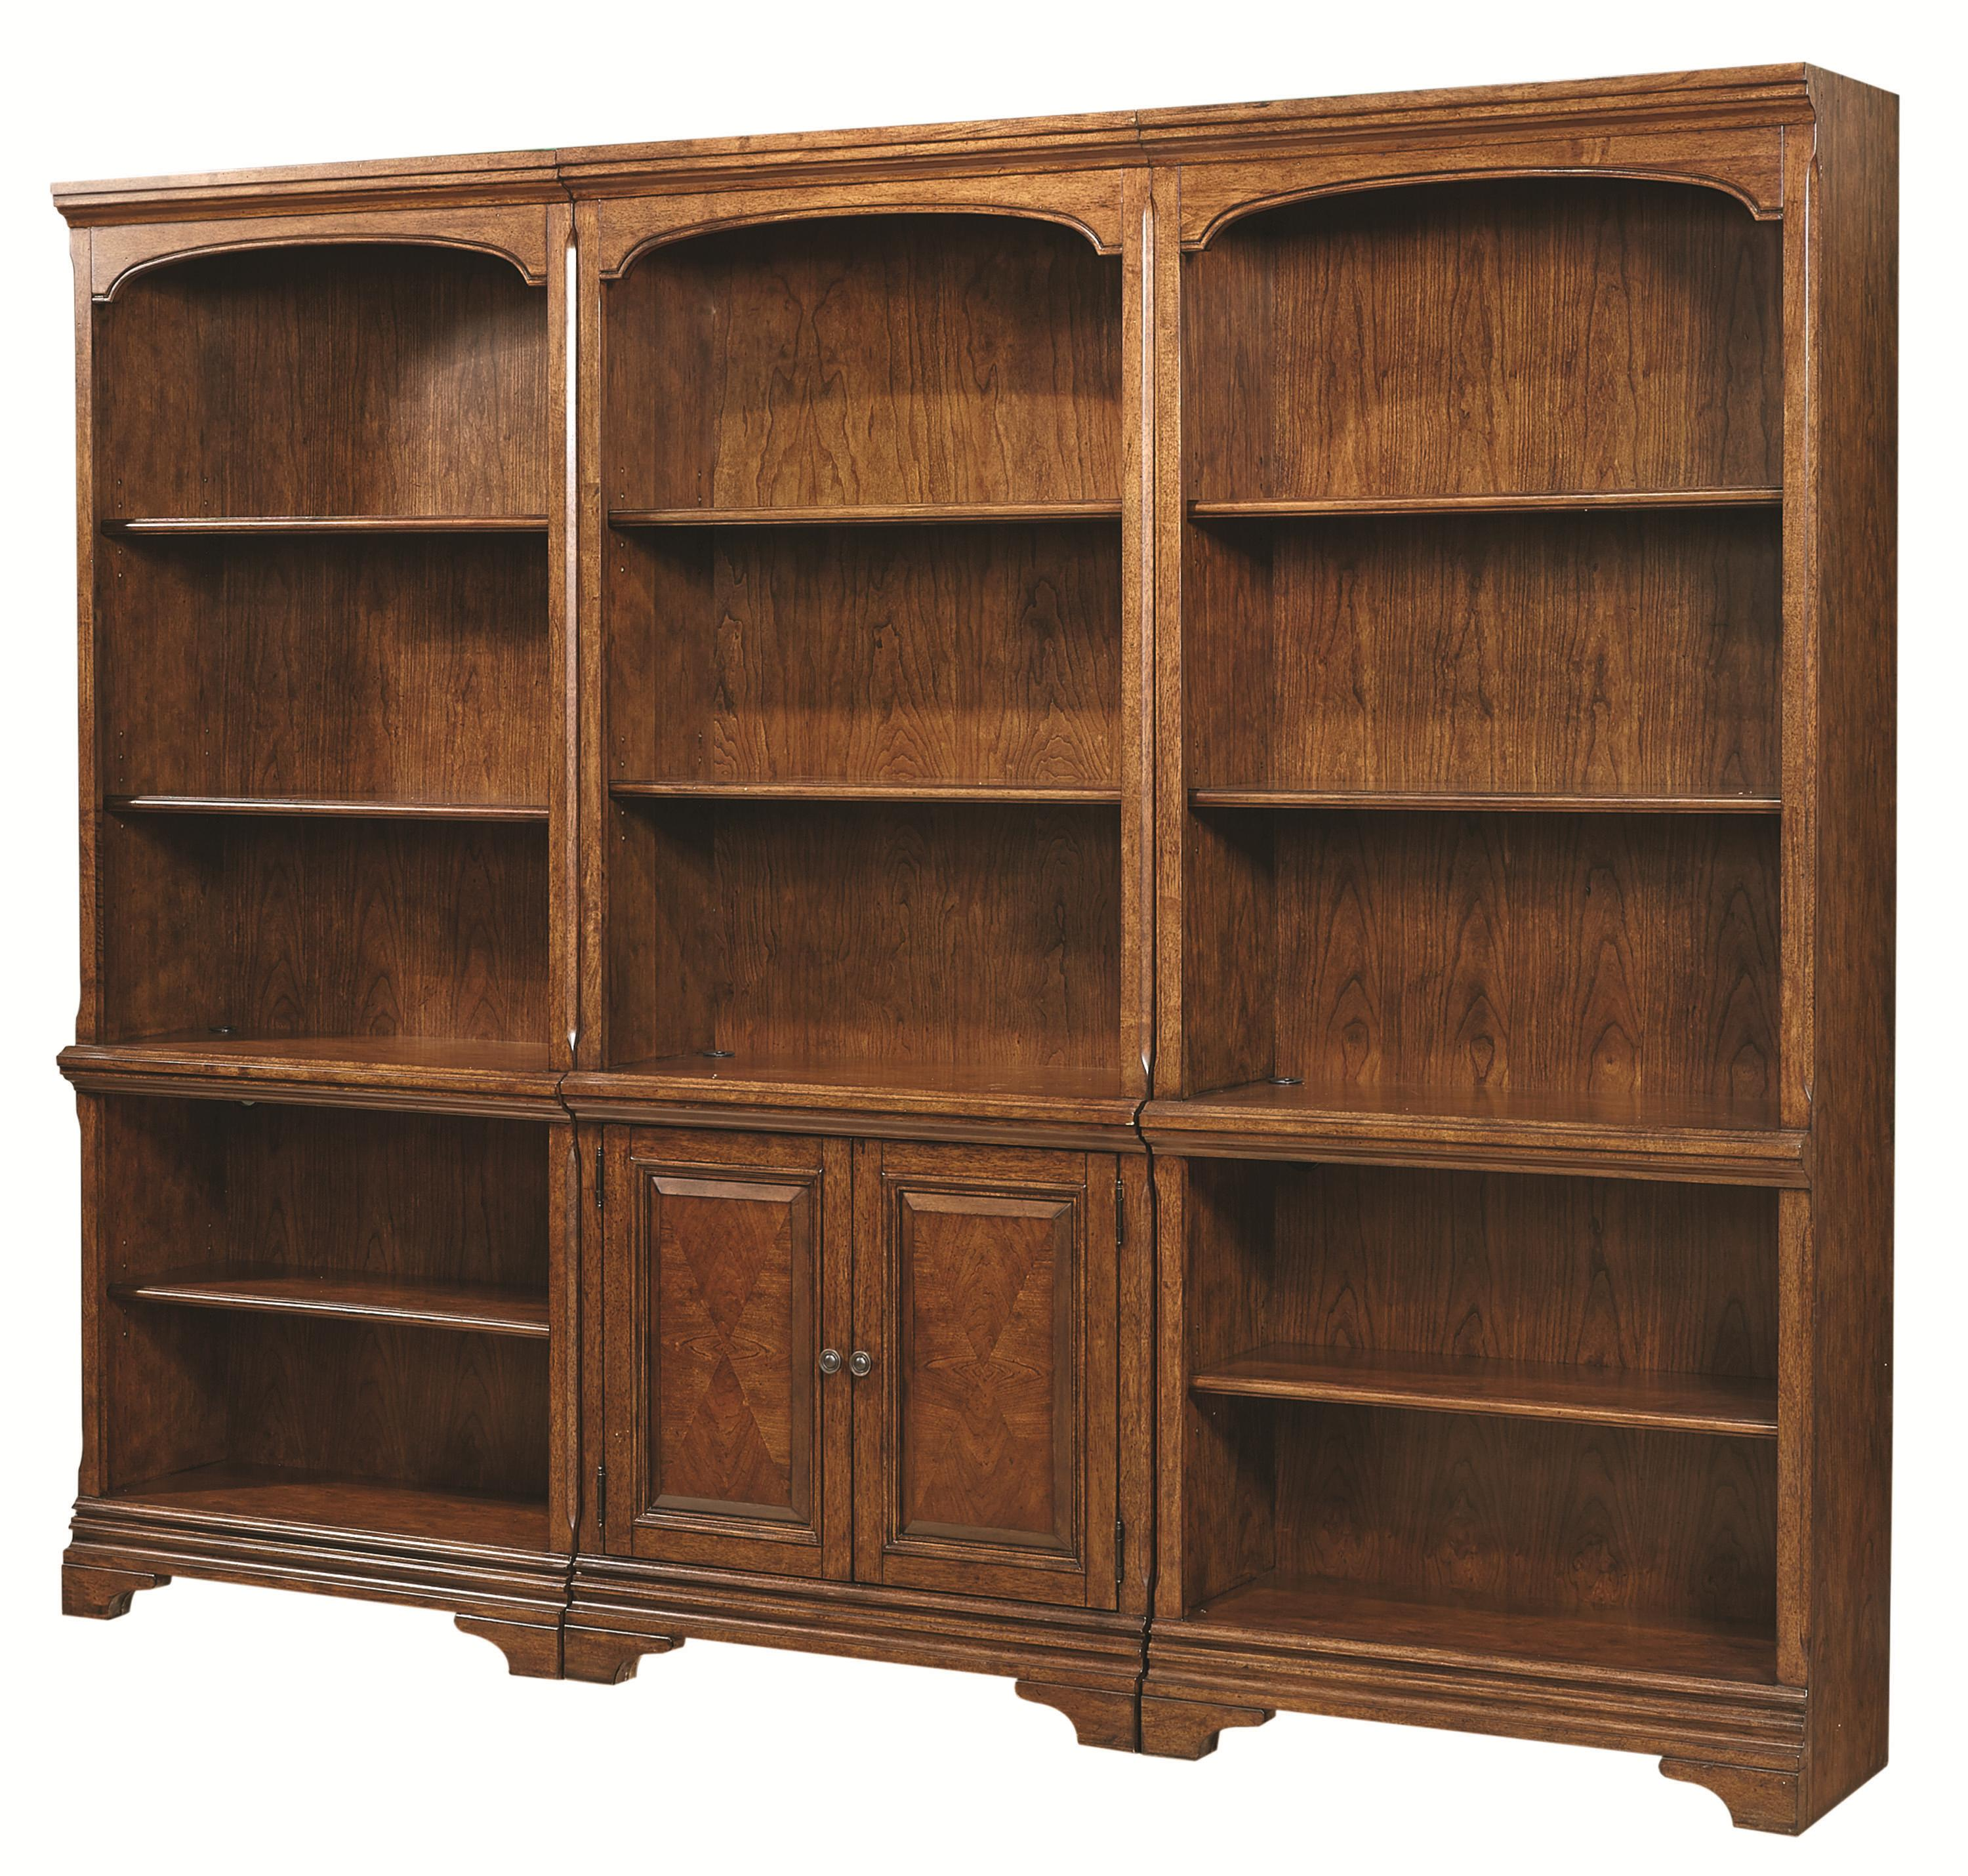 Aspenhome Warm Cherry Executive Modular Home Office: Bookcase Wall With 1 Door Bookcase And 2 Open Bookcases By